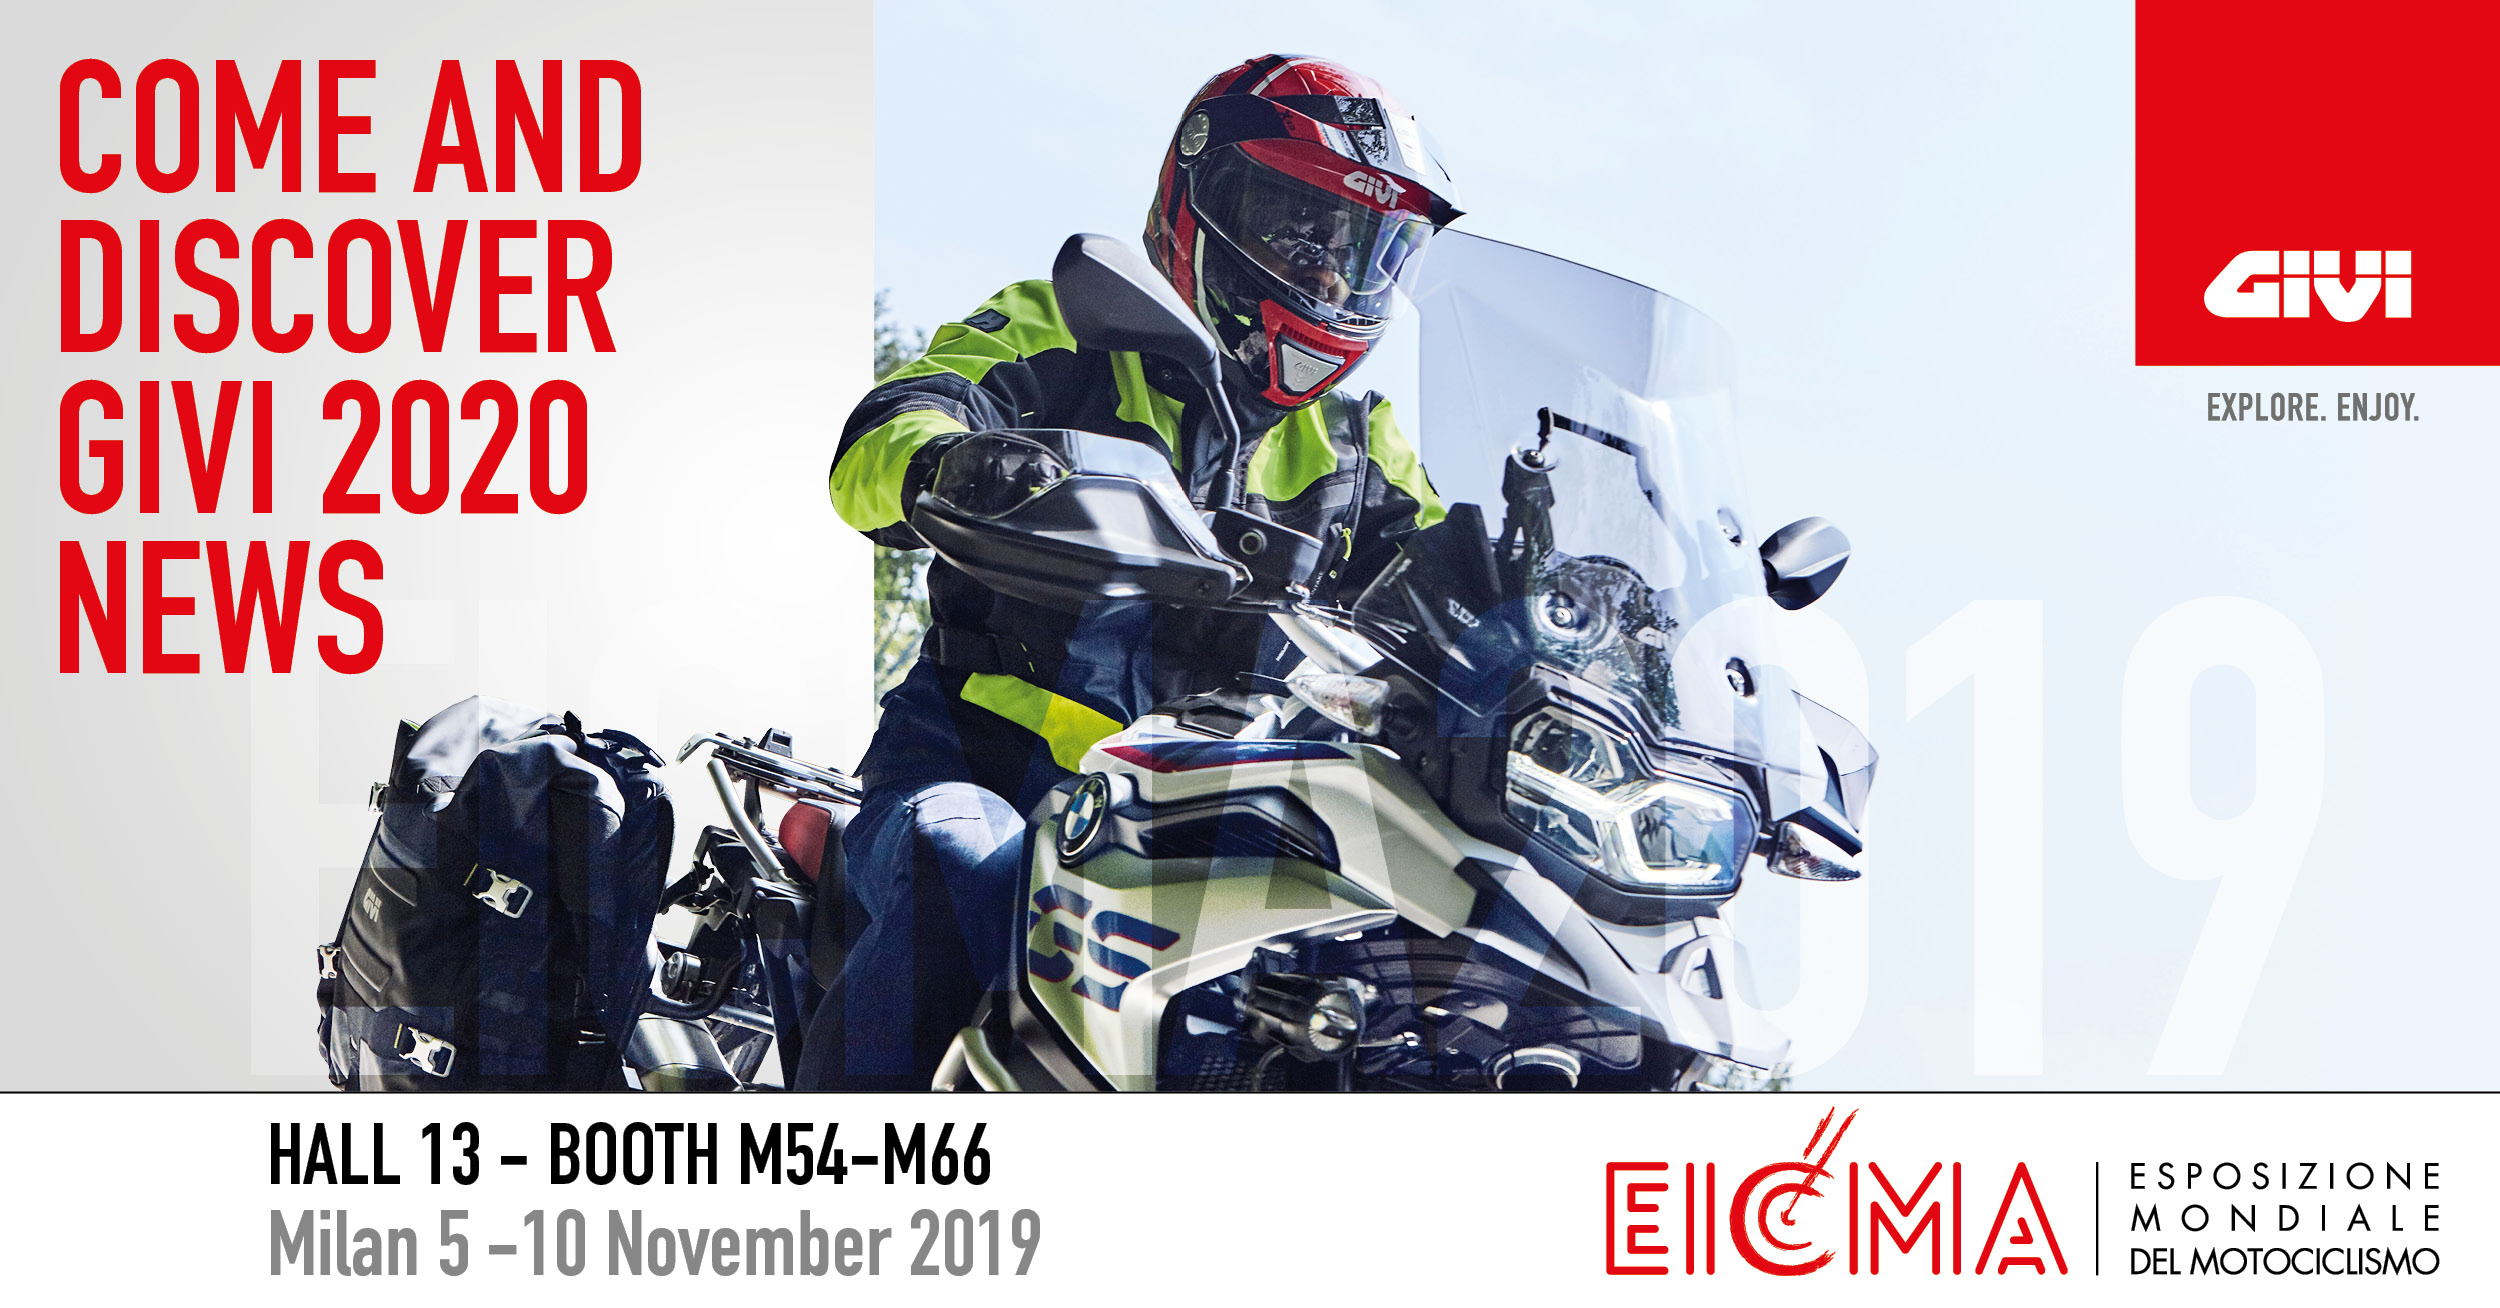 GIVI+is+getting+ready+for+EICMA+with+big+news+and+amazing+guests%21